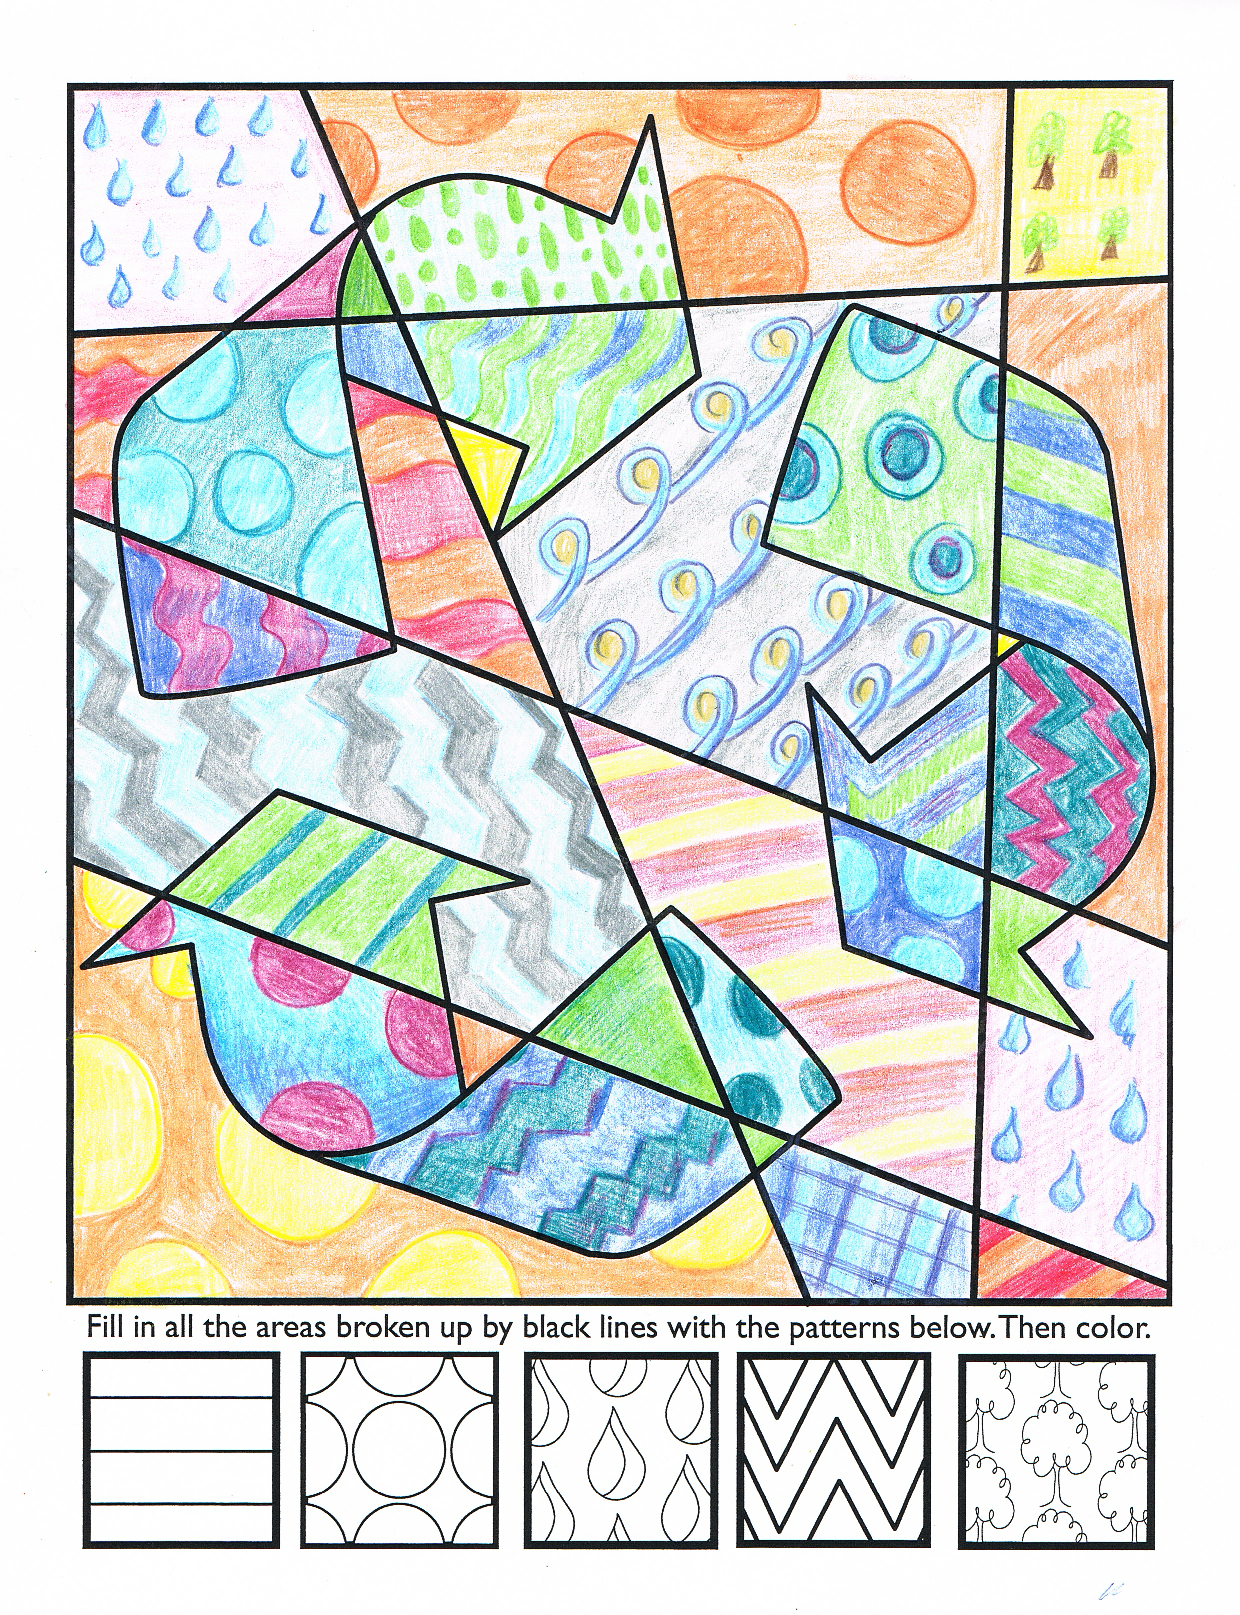 Earth day coloring pages for adults -  Pop Art Earth Day Interactive Coloring Sheets